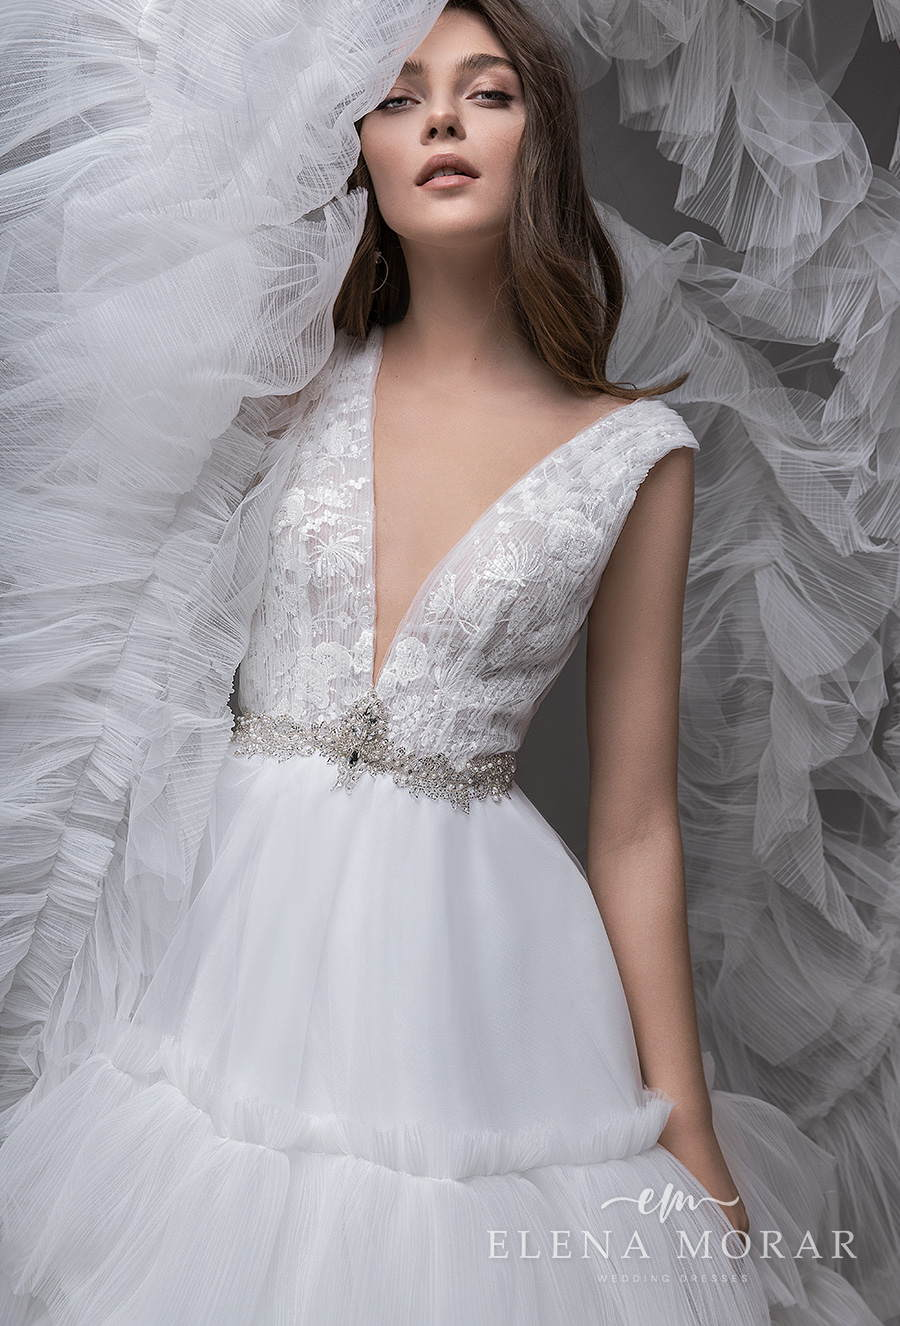 elena morar 2021 desert rose bridal sleeveless deep v neck heavily embellished bodice tiered skirt princess a line wedding dress v back royal train (015) zv mv